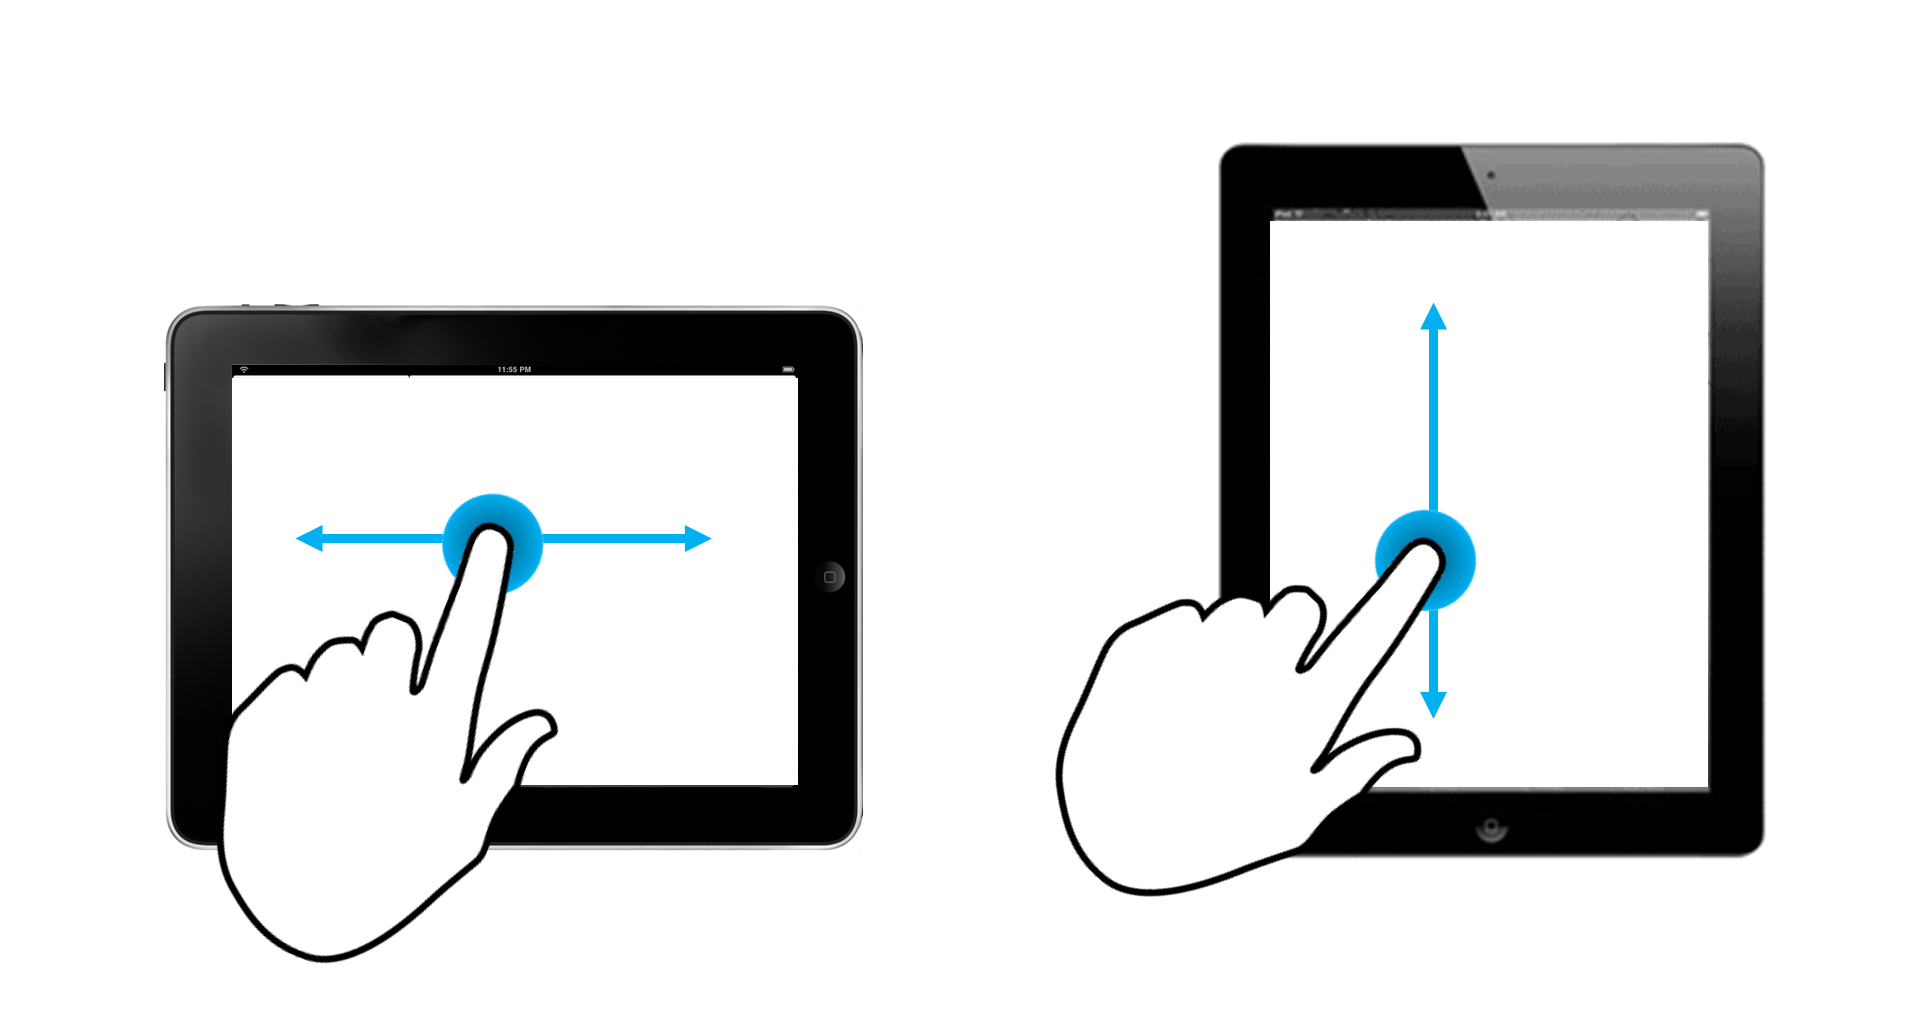 Graphic showing scrolling patterns on landscape orientation (horizontal scrolling) vs portrait orientation (vertical scrolling)